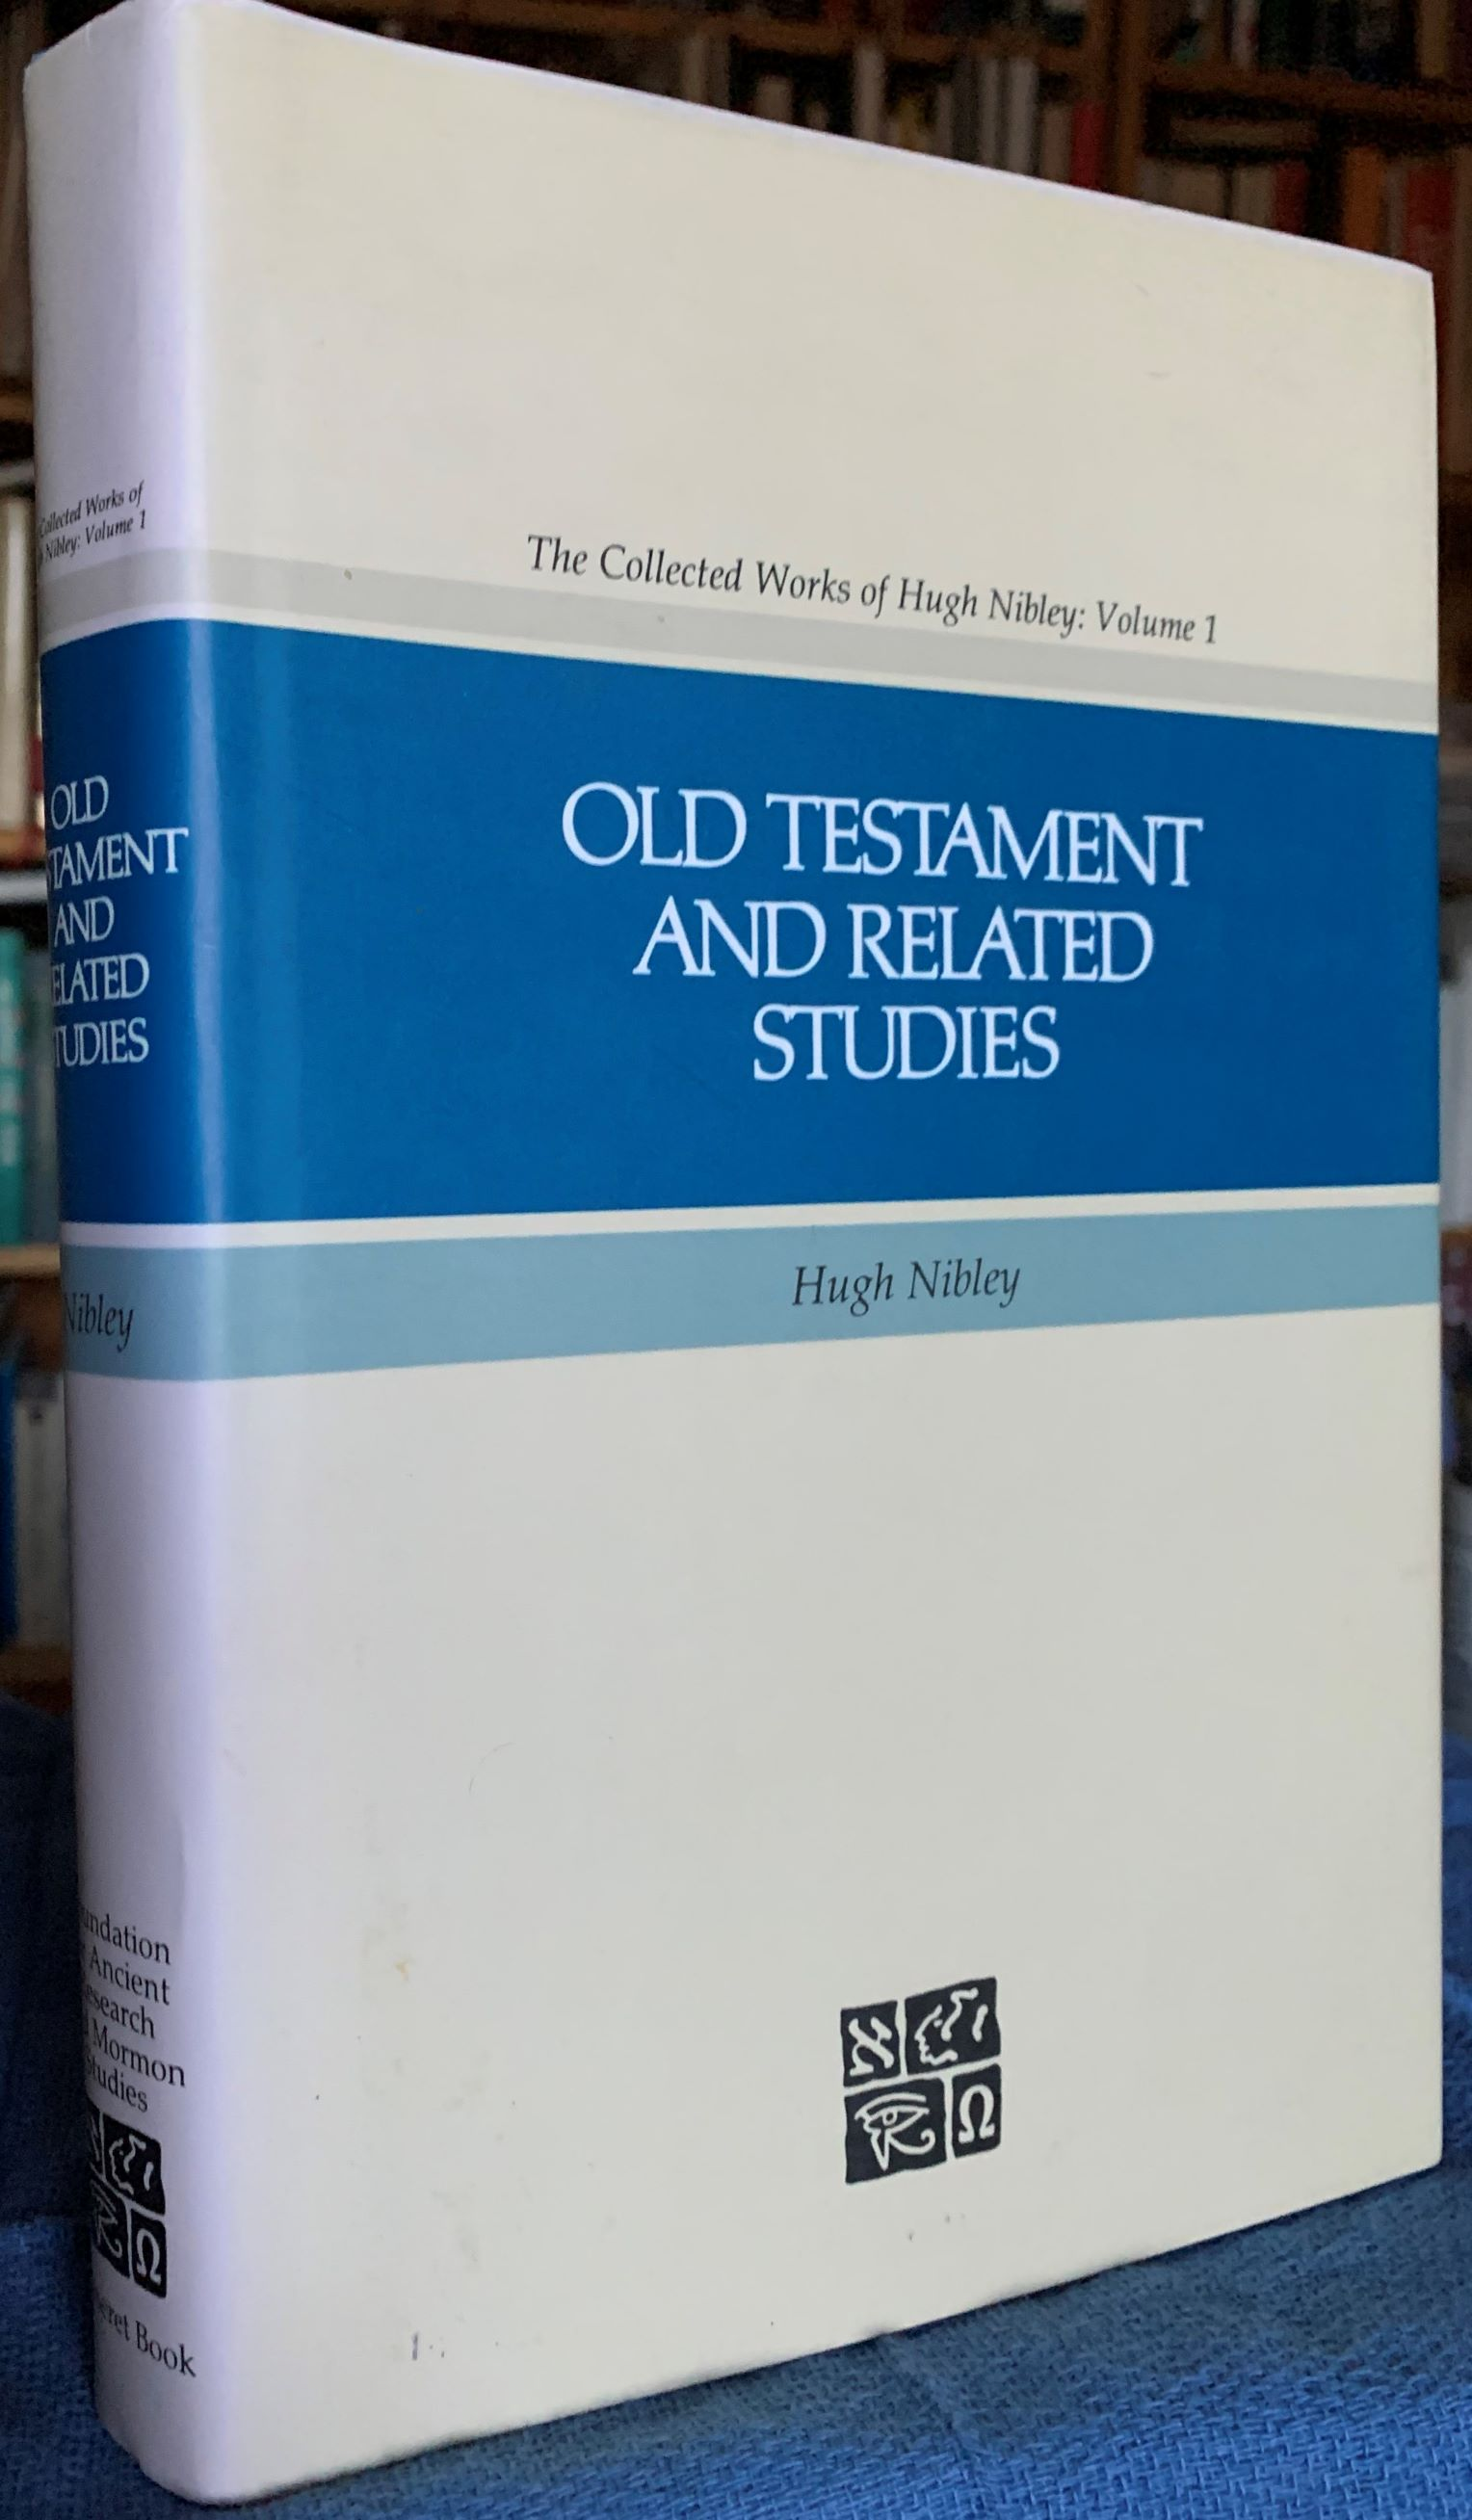 Image for Old Testament and Related Studies (The collected works of Hugh Nibley Volume 1).